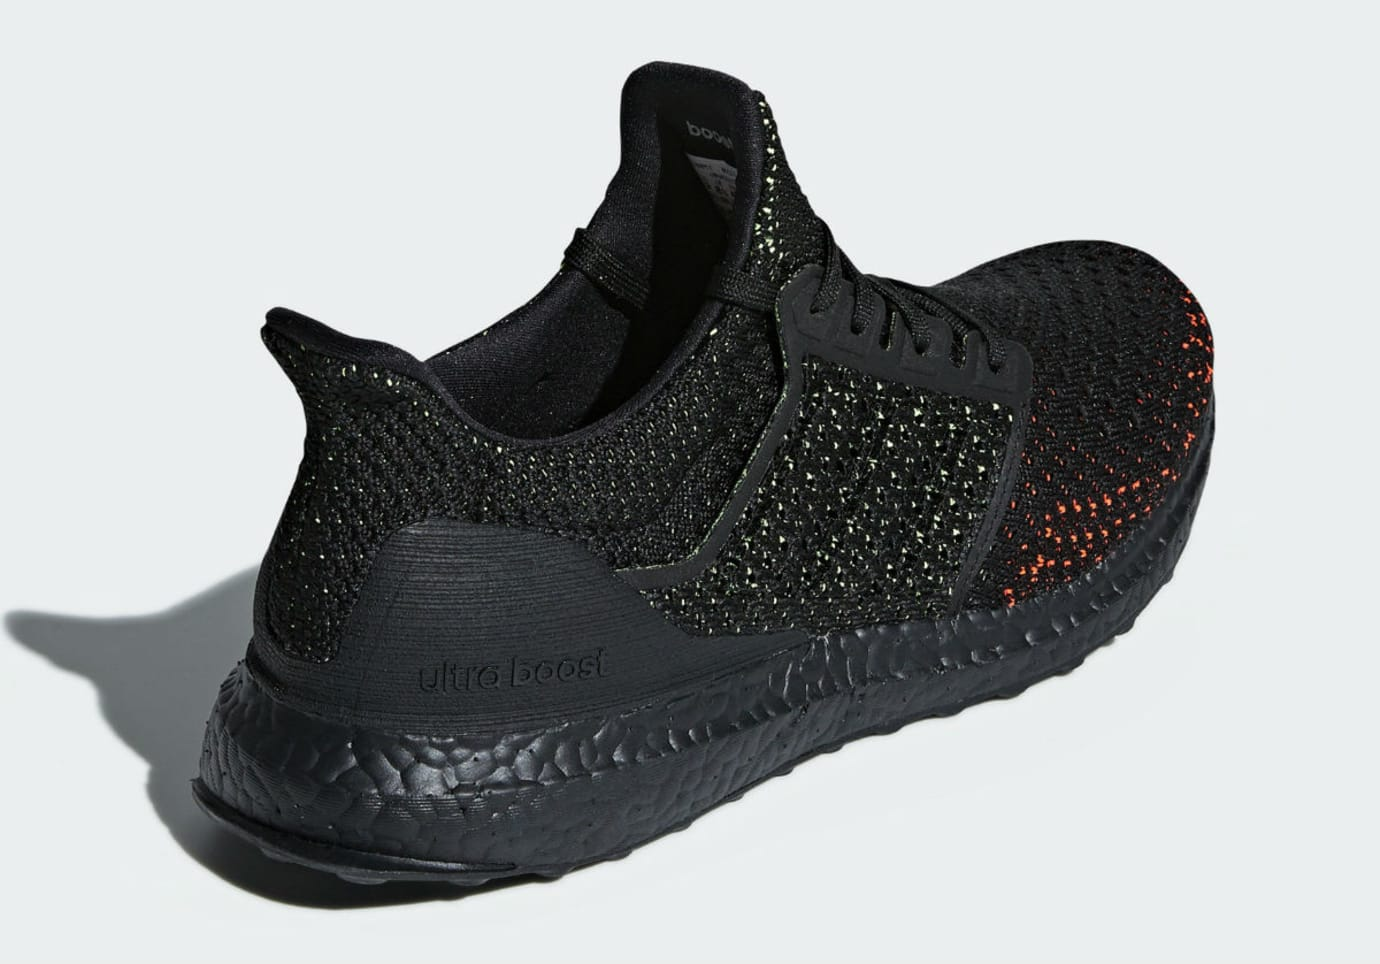 reputable site 41ea0 08106 Image via Adidas Adidas Ultra Boost Clima Black Solar Red Release Date  AQ0482 Heel